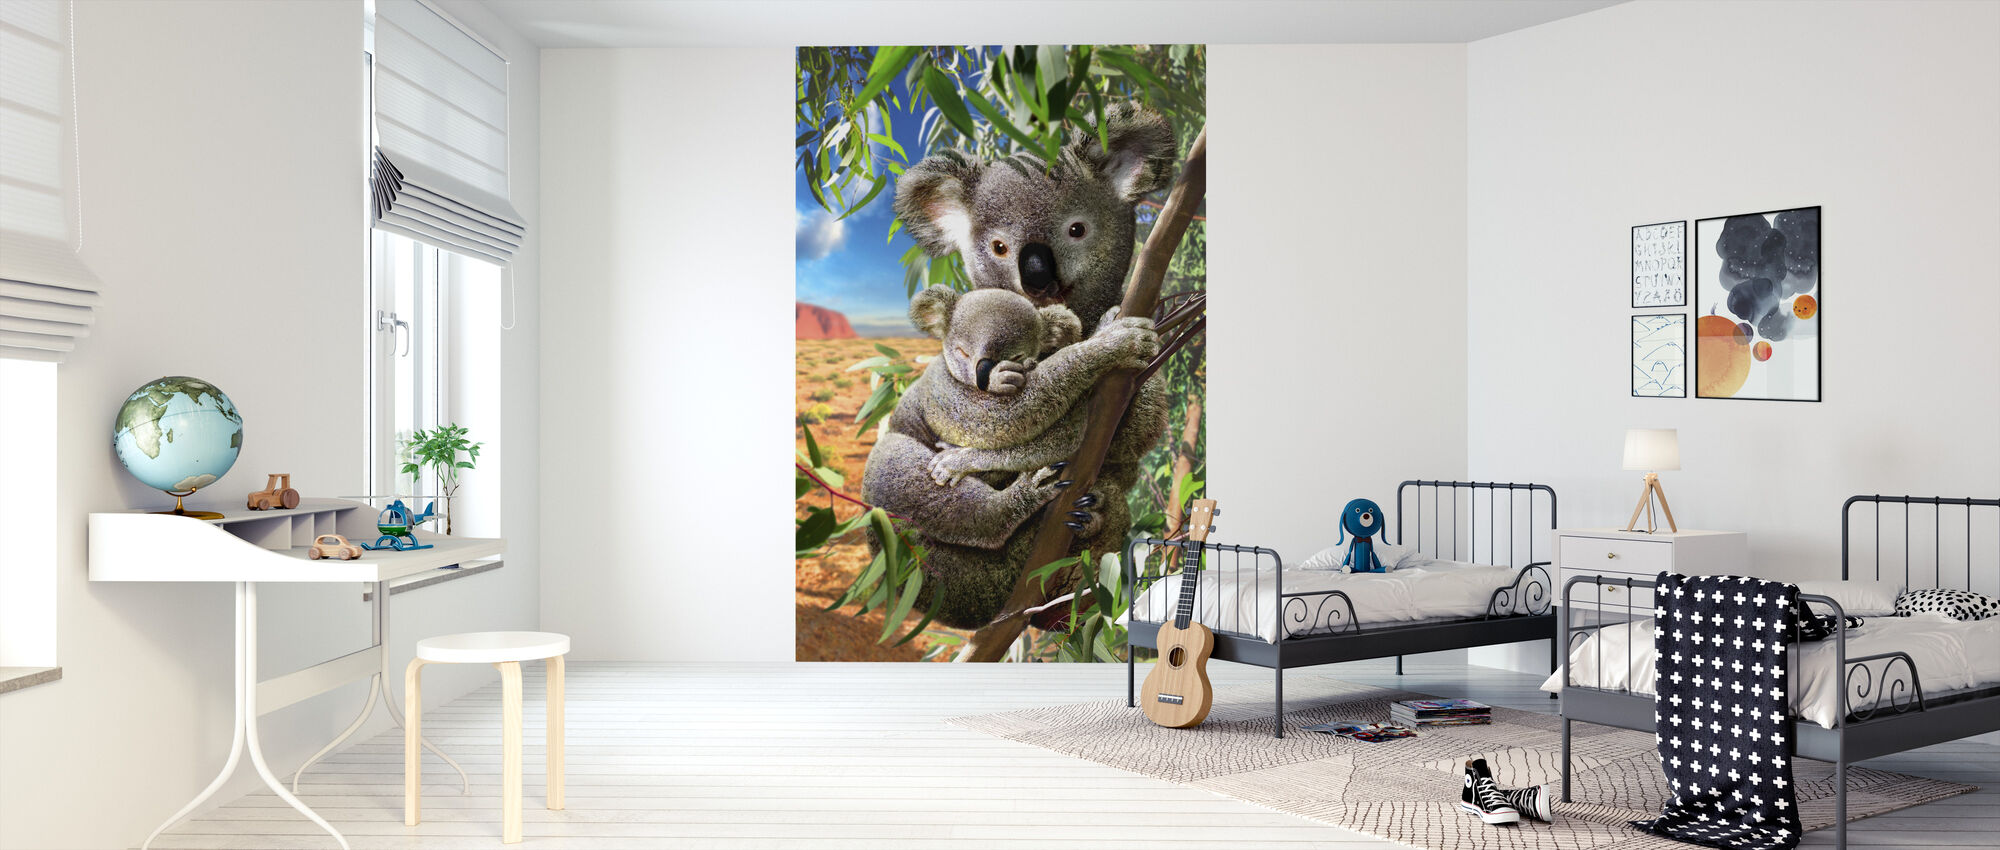 Koala and cub - Wallpaper - Kids Room